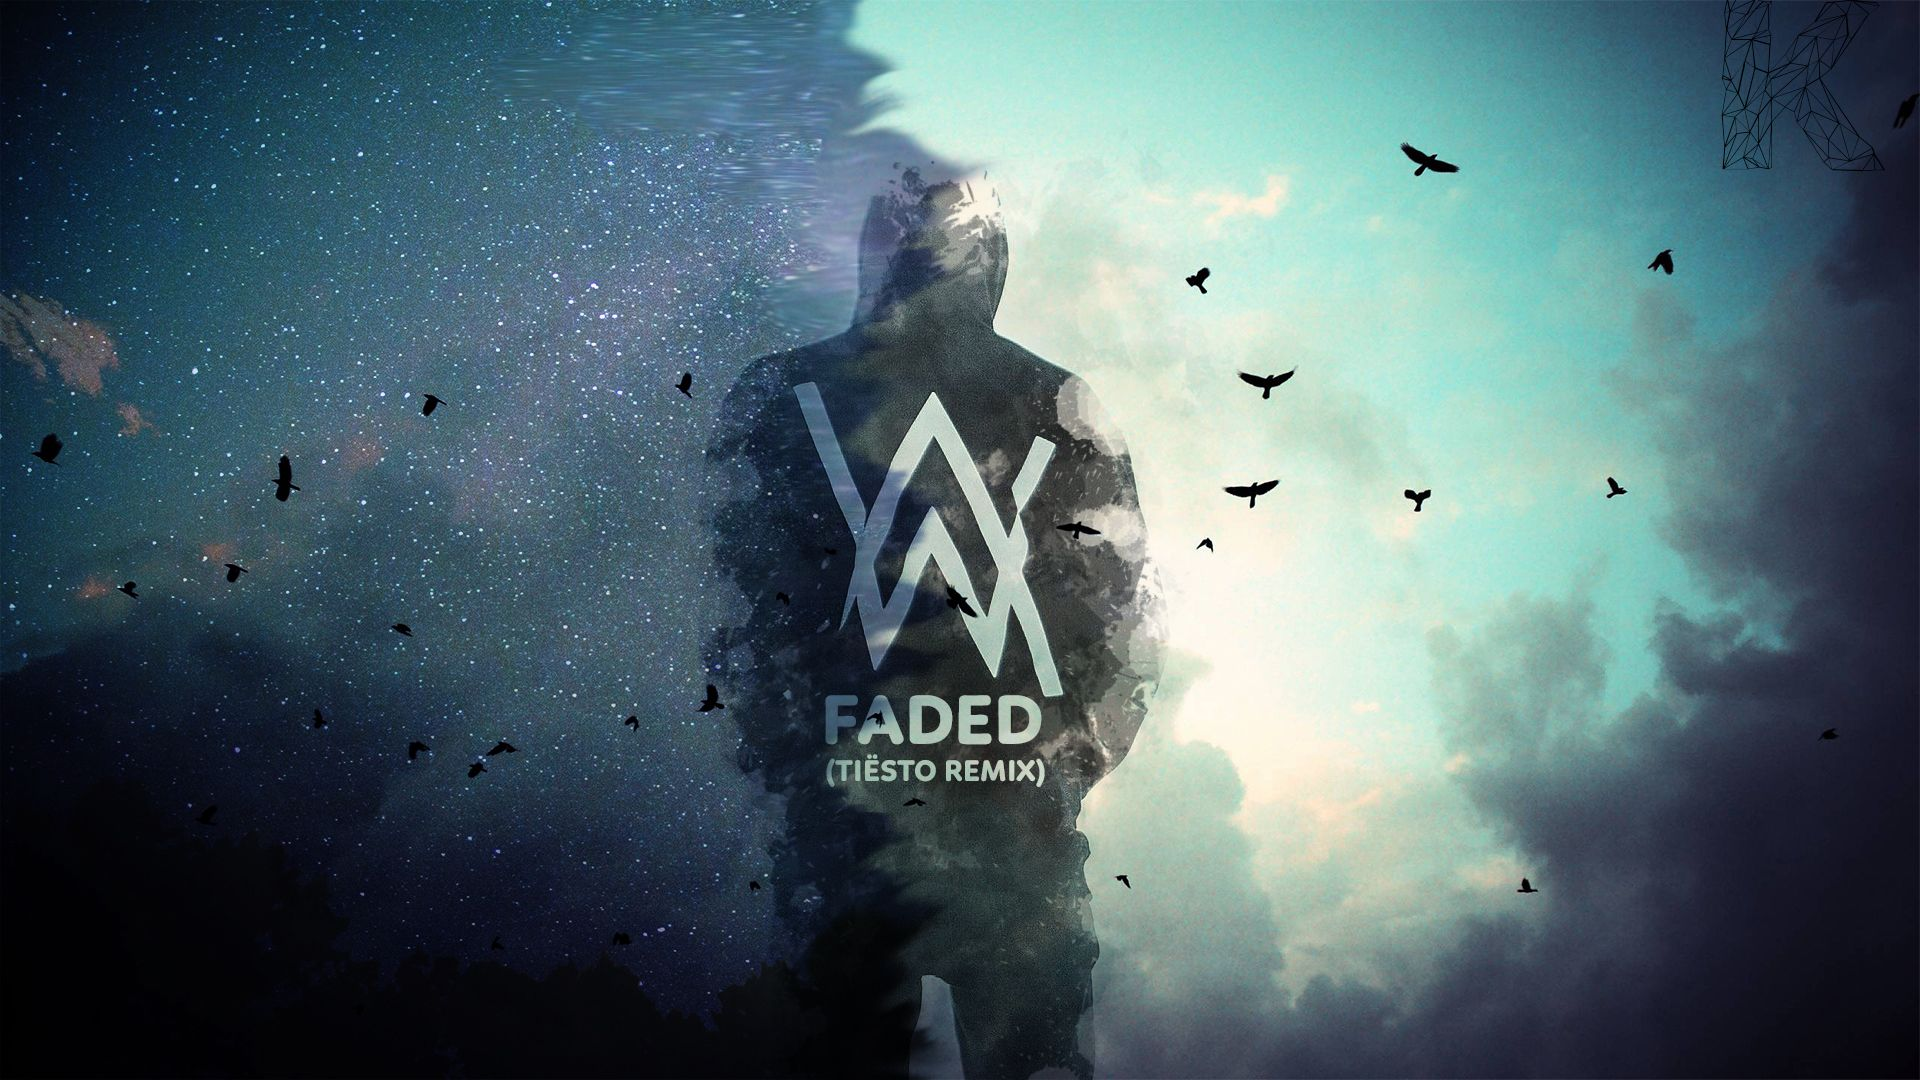 Faded Alan Walker Wallpaper Wallpaper Zone PHOTOGRPHY in 2019 1920x1080